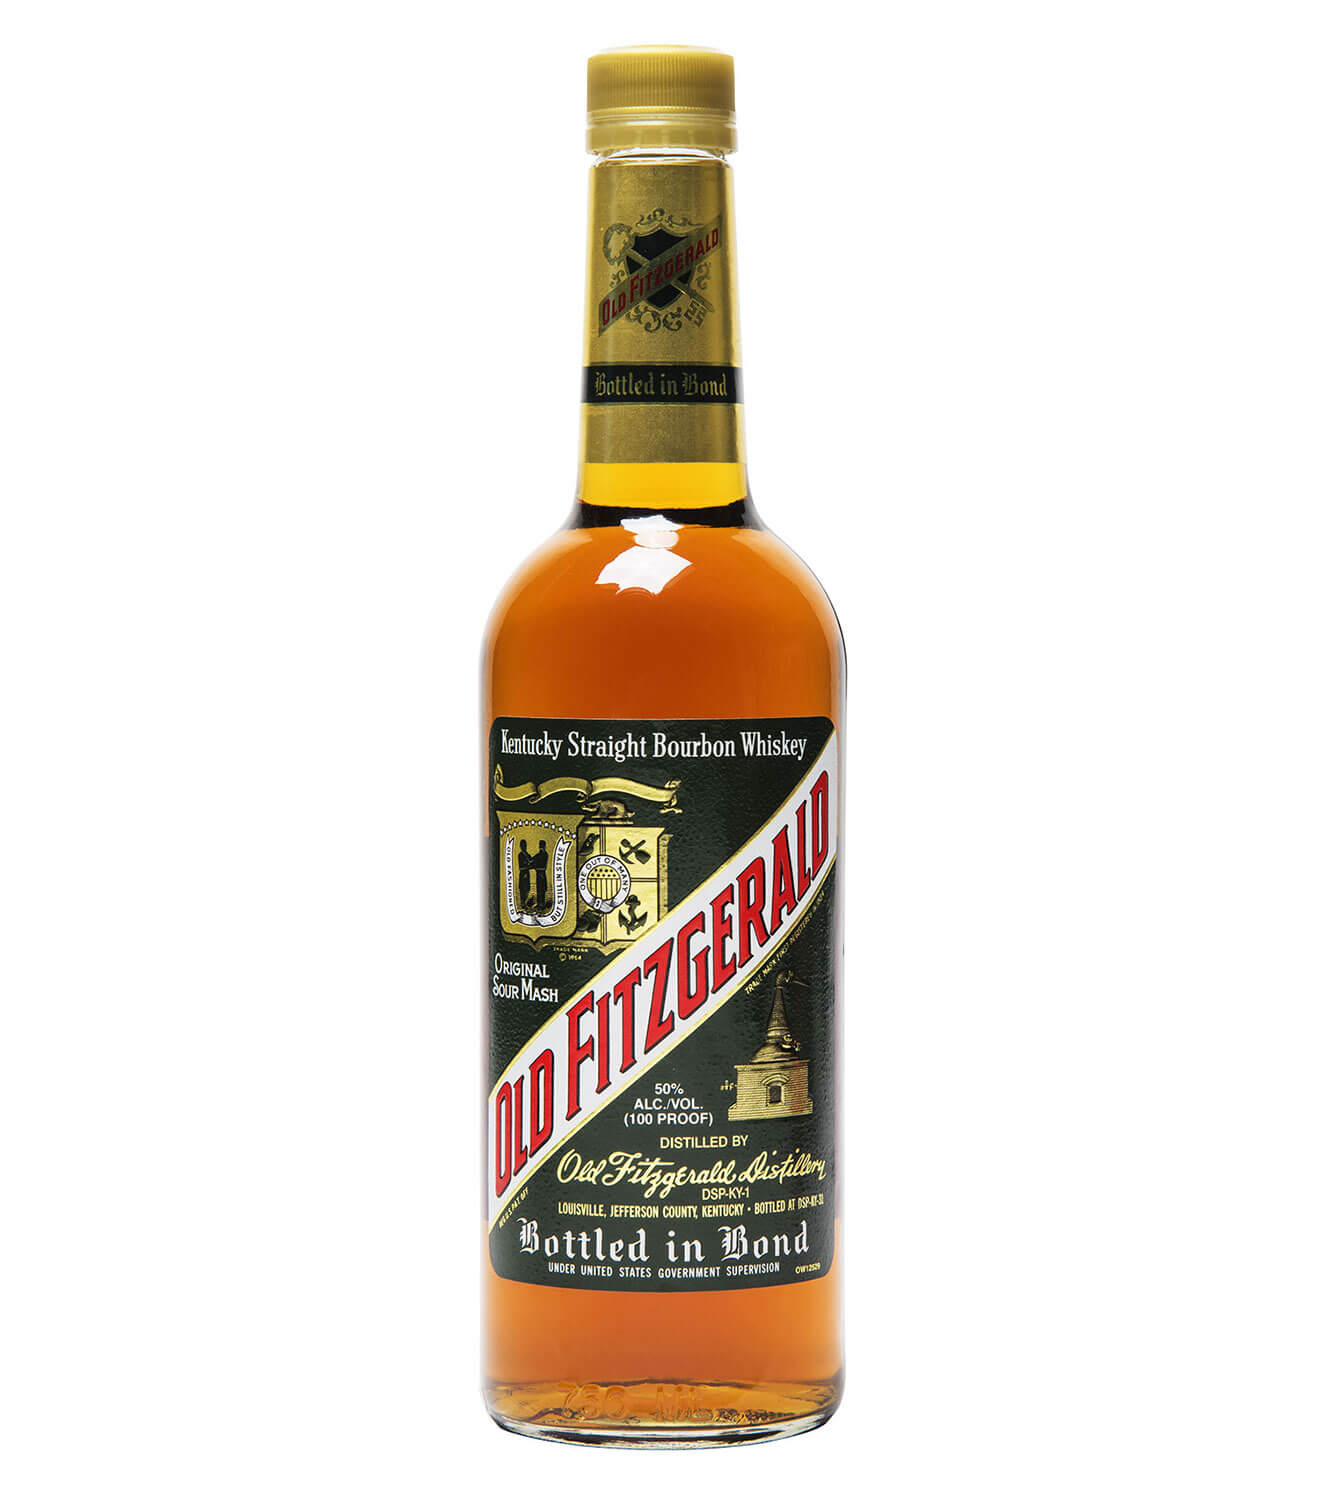 Old Fitzgerald Bottled-in-Bond, bottle on white